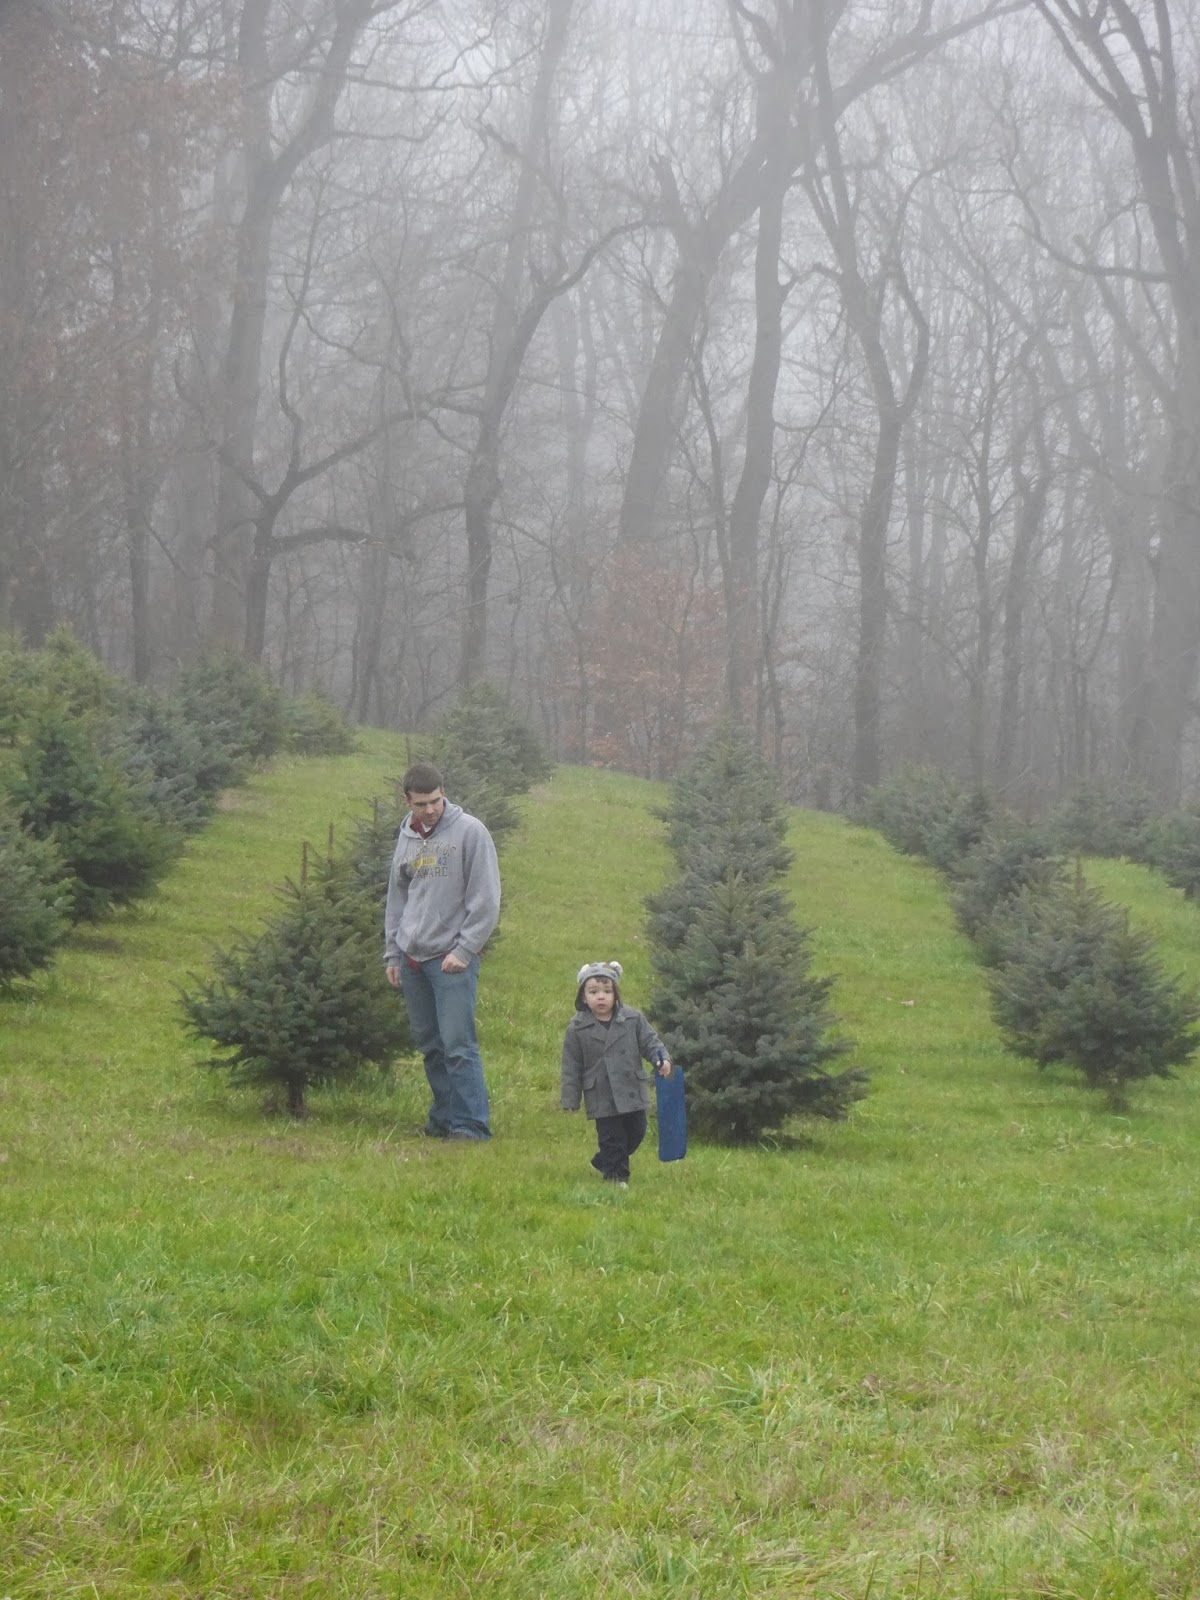 2304 Miles: Christmas Tree Farms: Old Stone Farm and Evergreen Acres